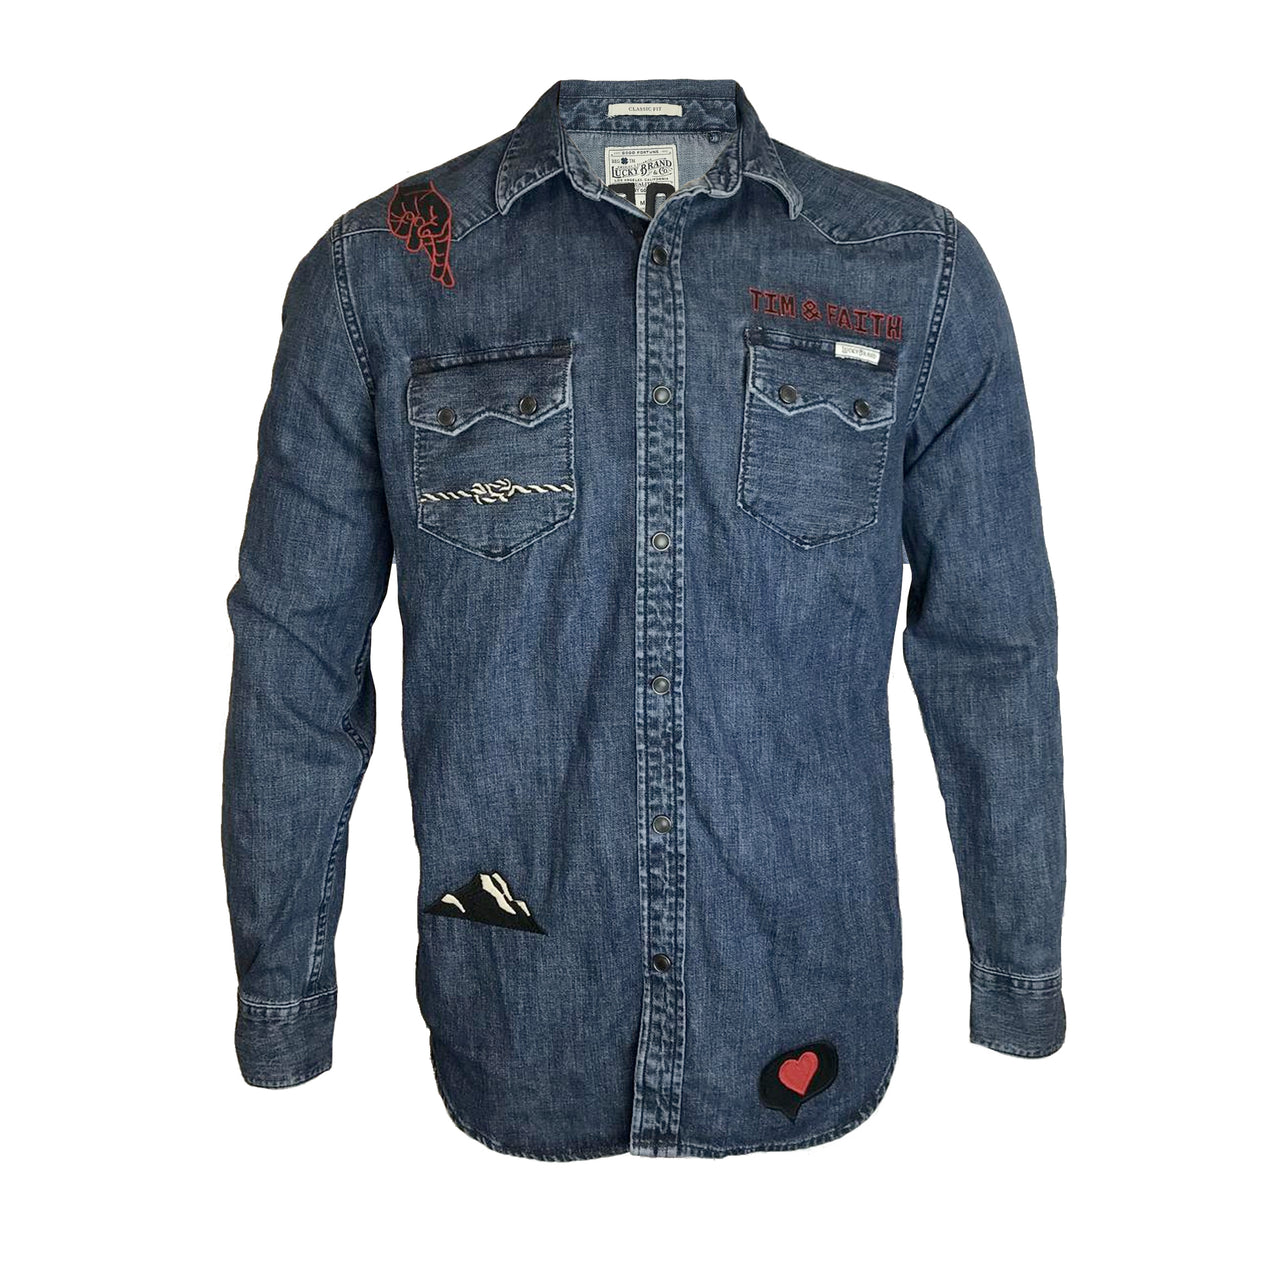 The Rest Of Our Life Unisex Denim Shirt